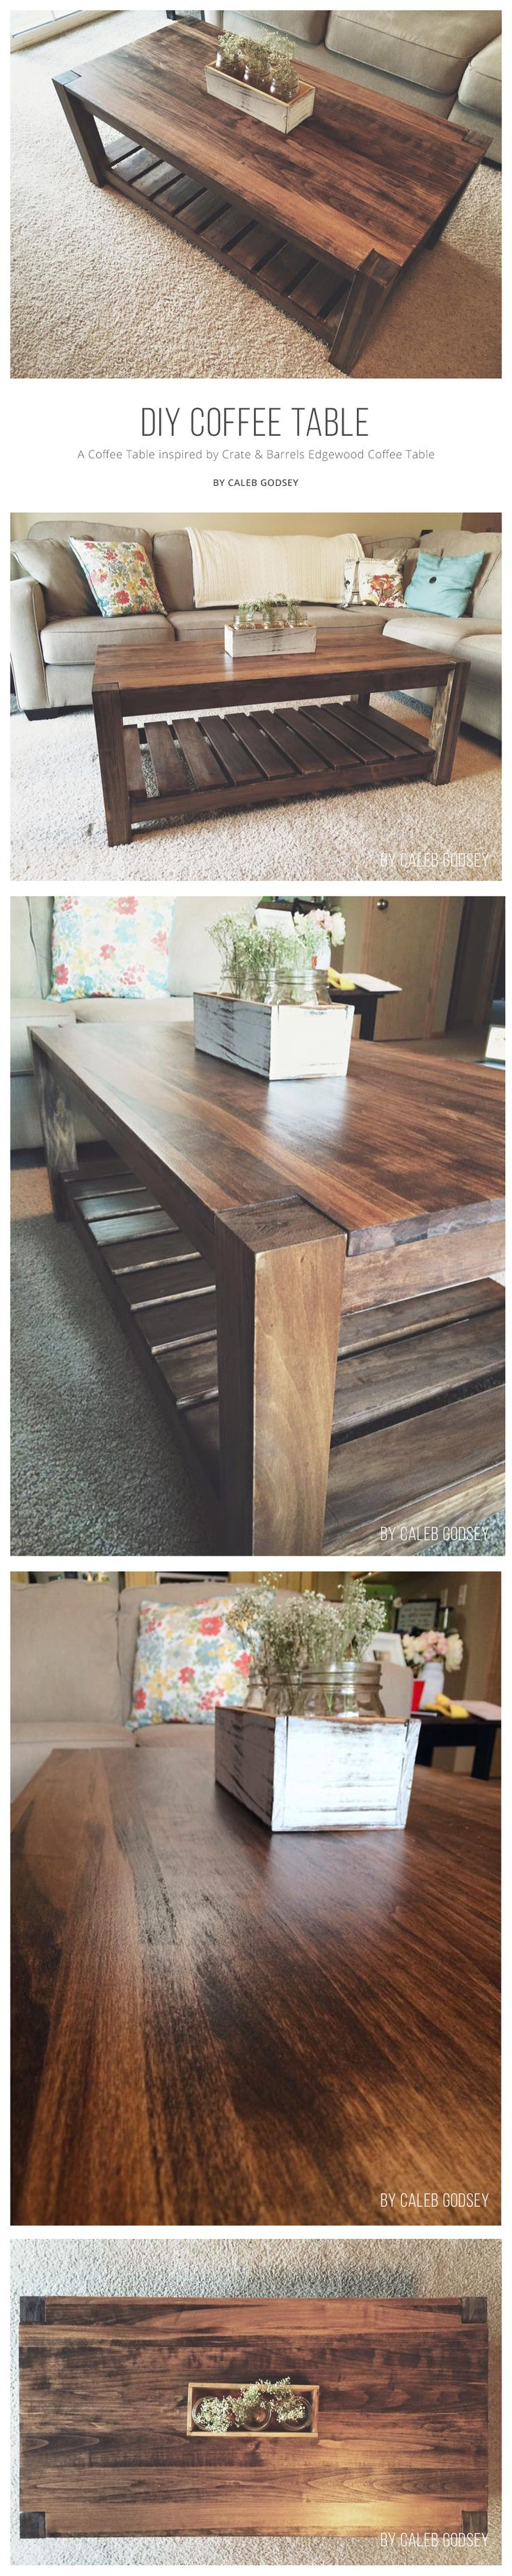 a beautiful aspen and pine diy coffee table inspired by crate barrels edgewood coffee table mr and mrs interior best interior design ideas guide buy pallet furniture design plans